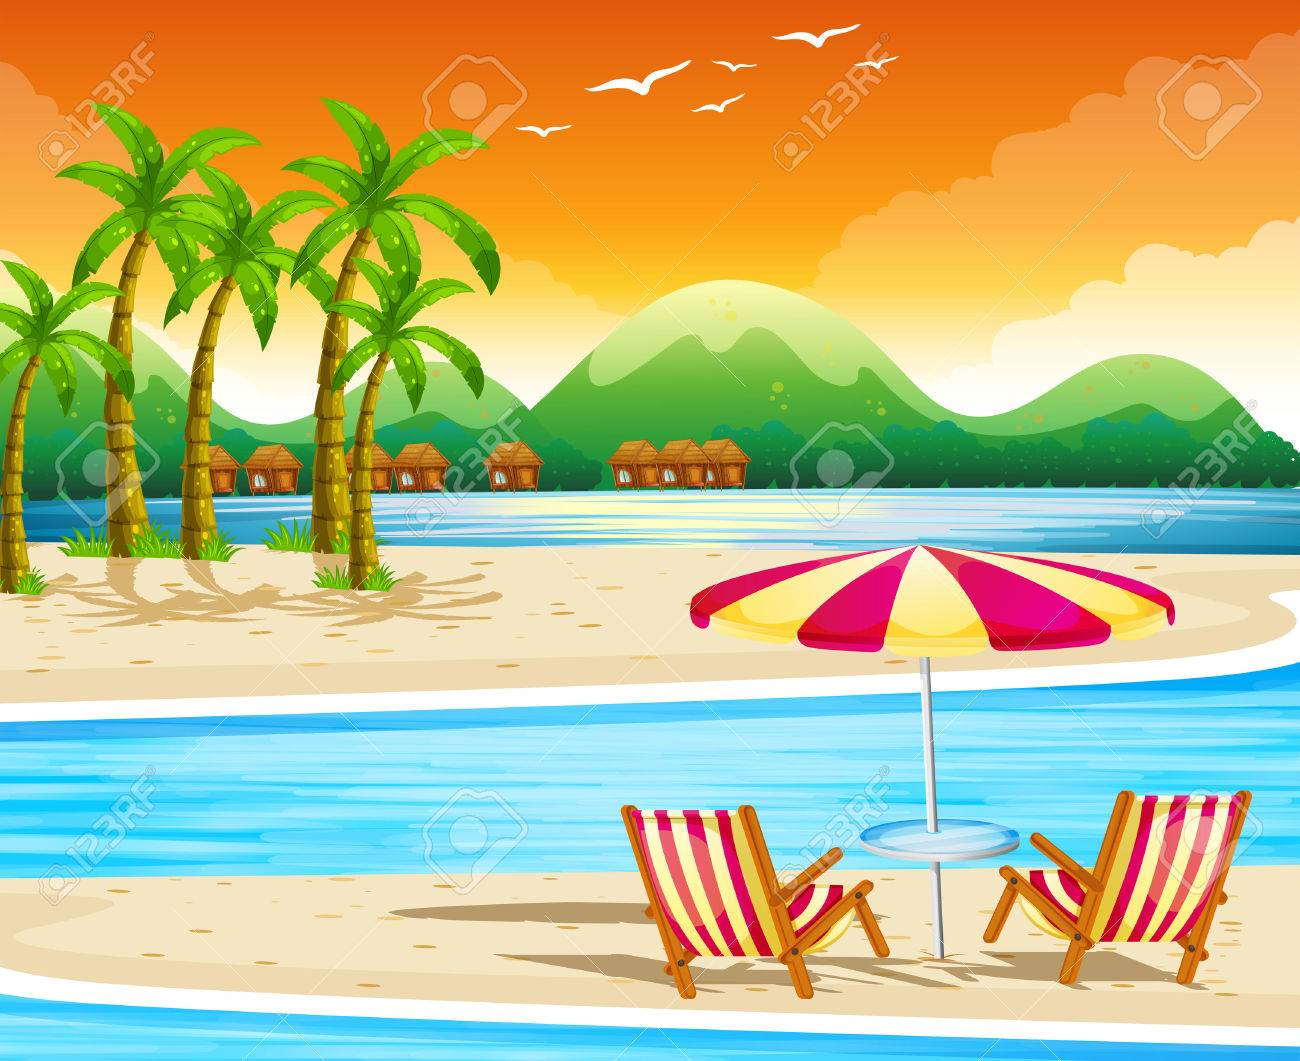 Beach Scene With Chairs And Umbrella Illustration Royalty Free